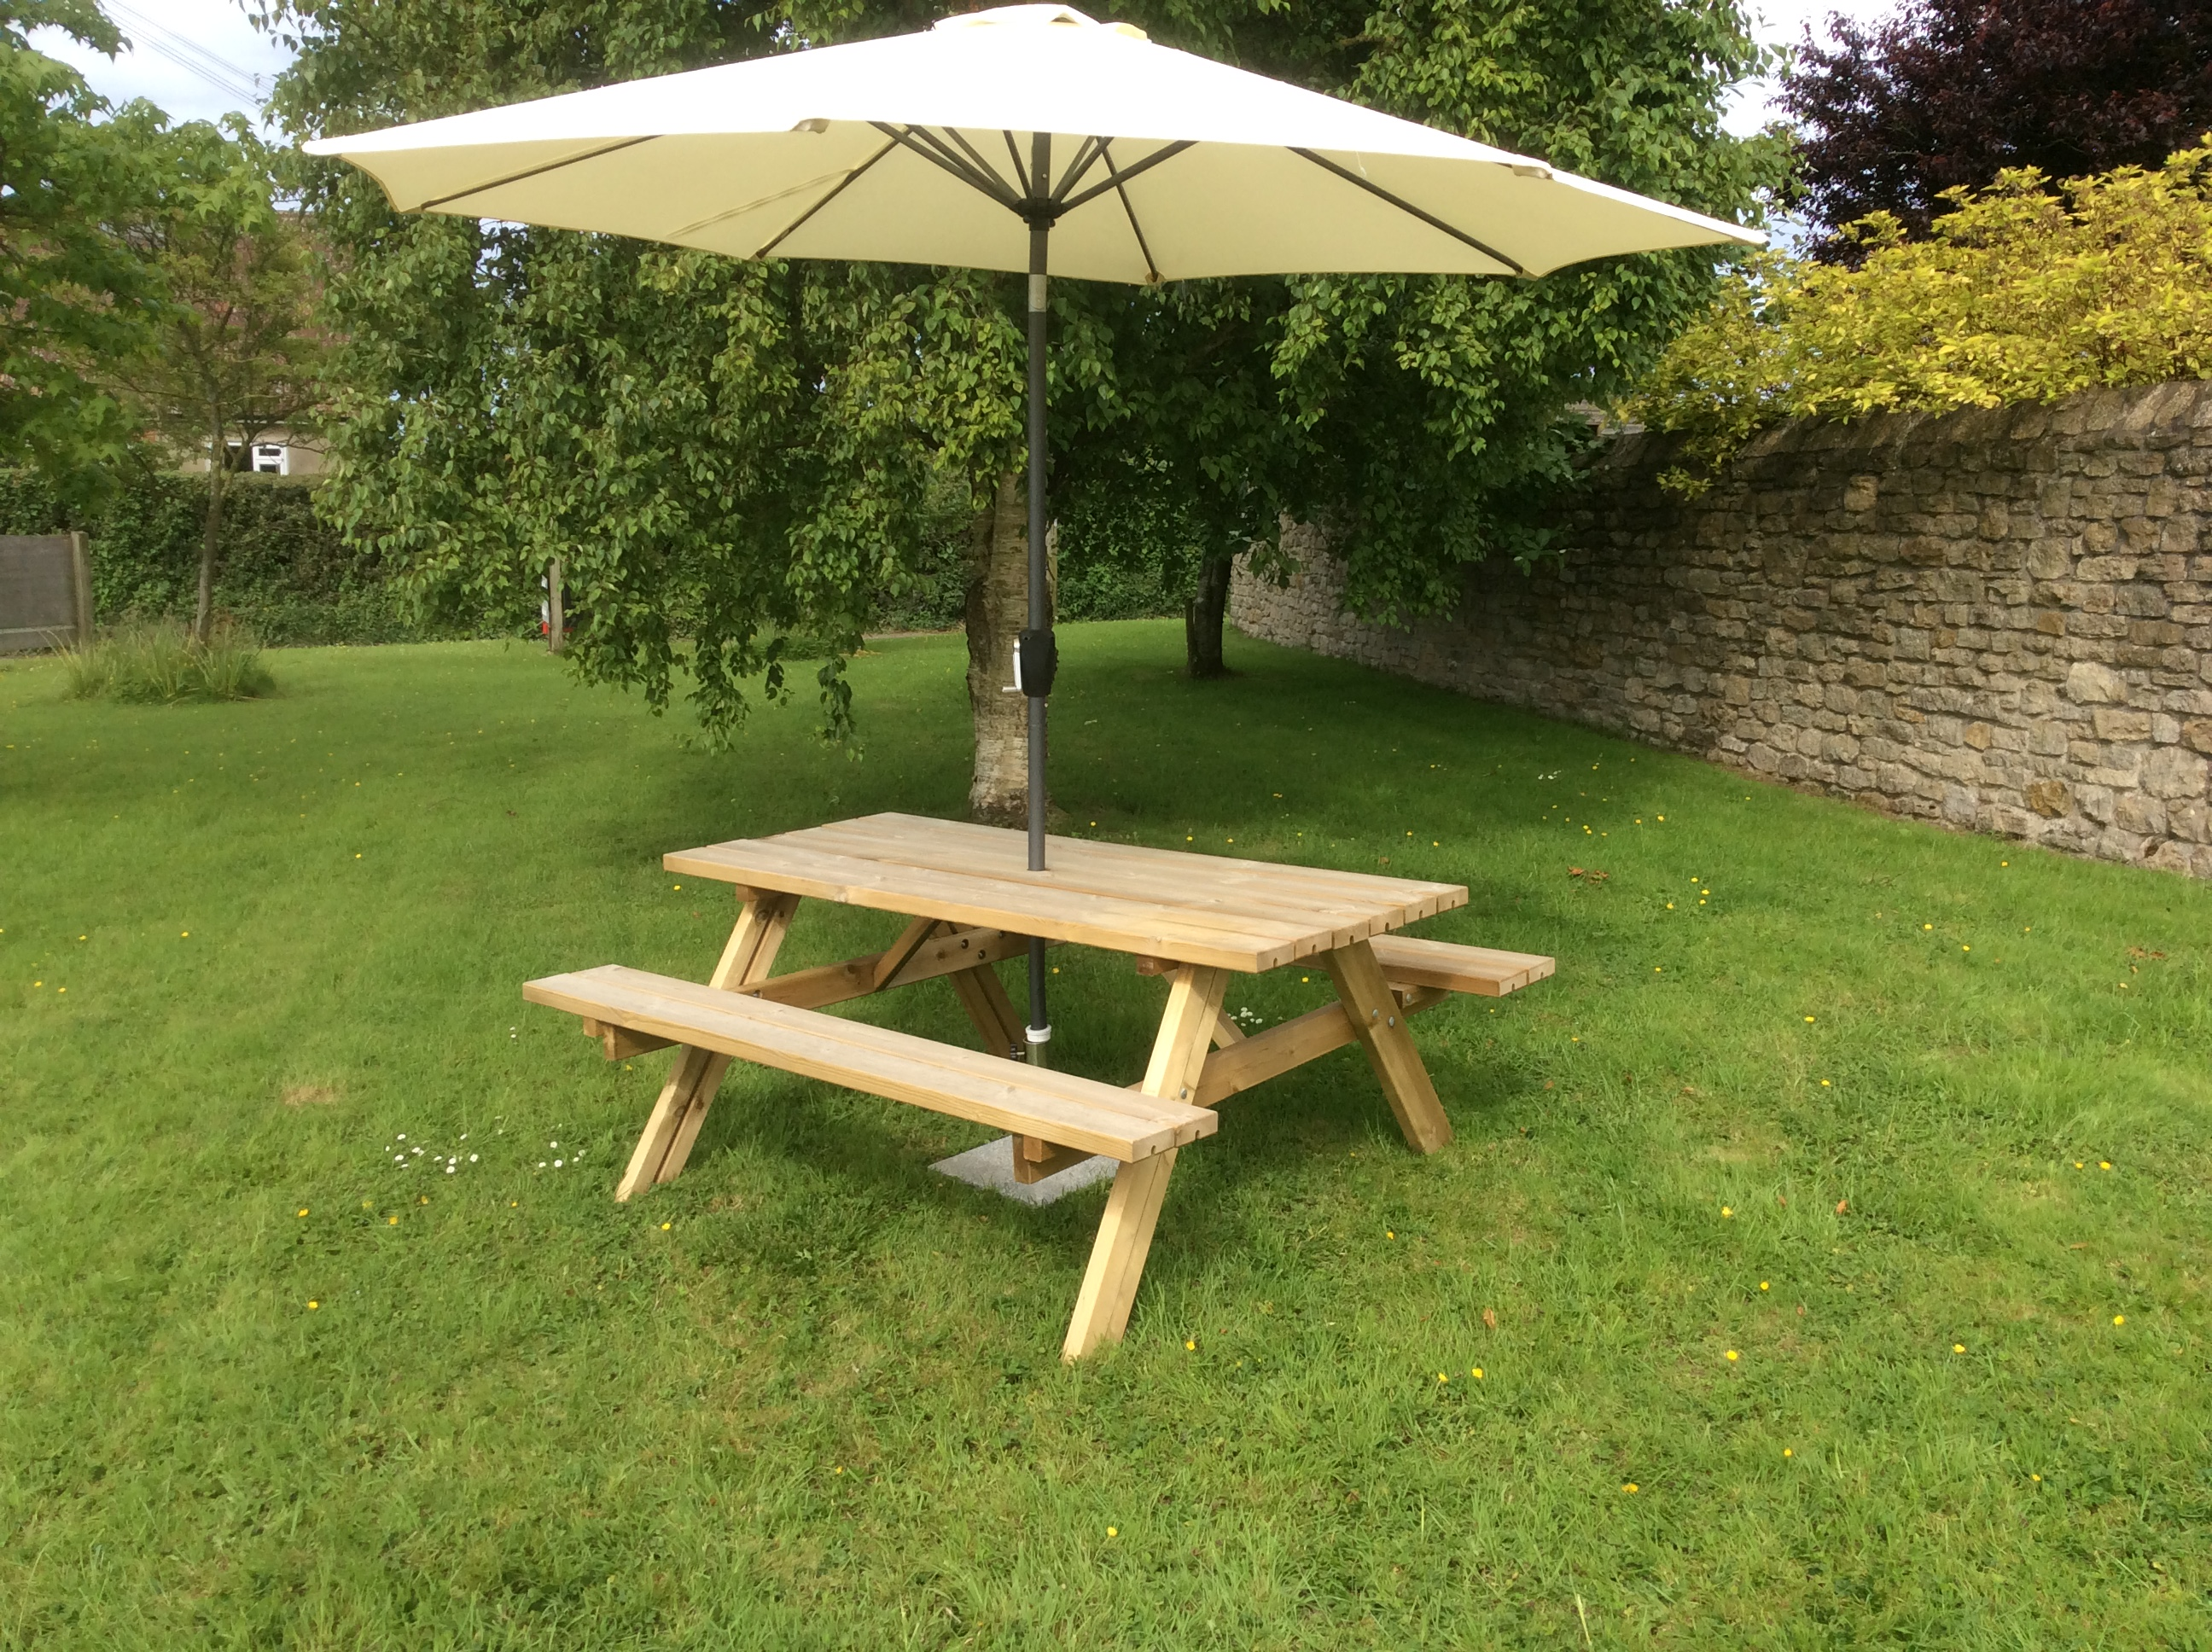 Tanalised Picnic Table John Bright Fencing - Picnic table parasol